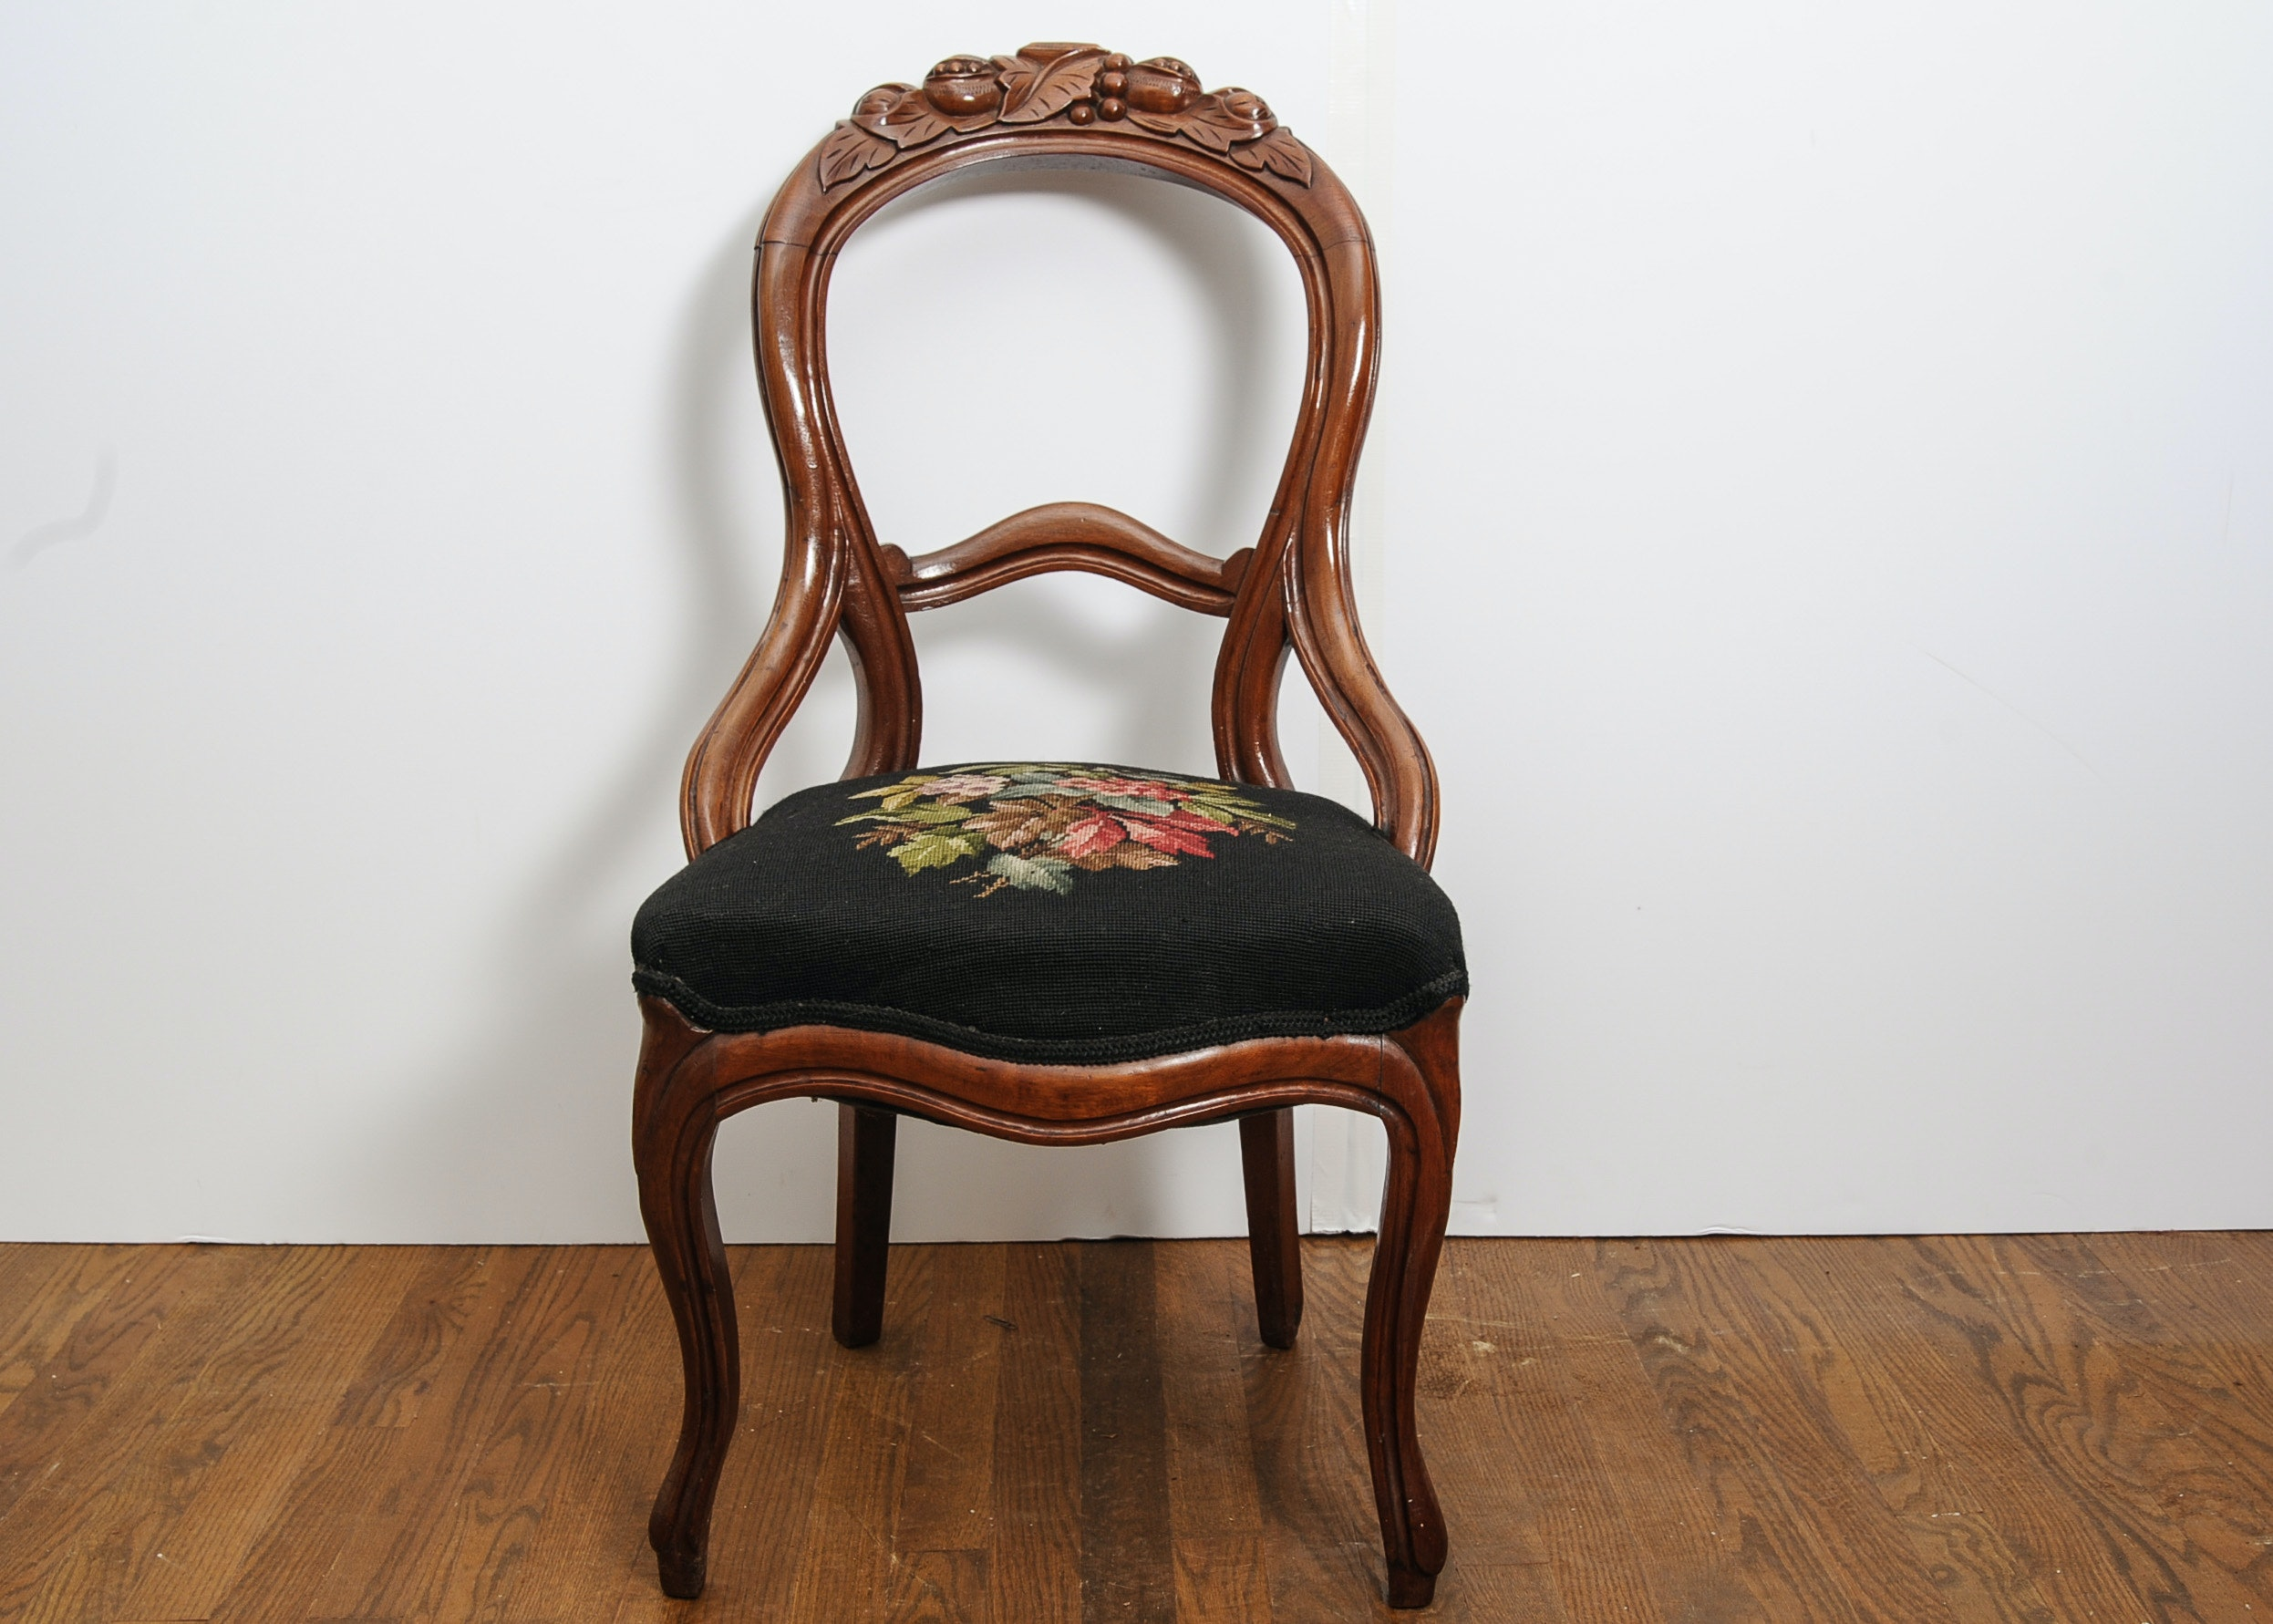 Victorian Era Balloon Back Chair With Intricately Carved Back ...